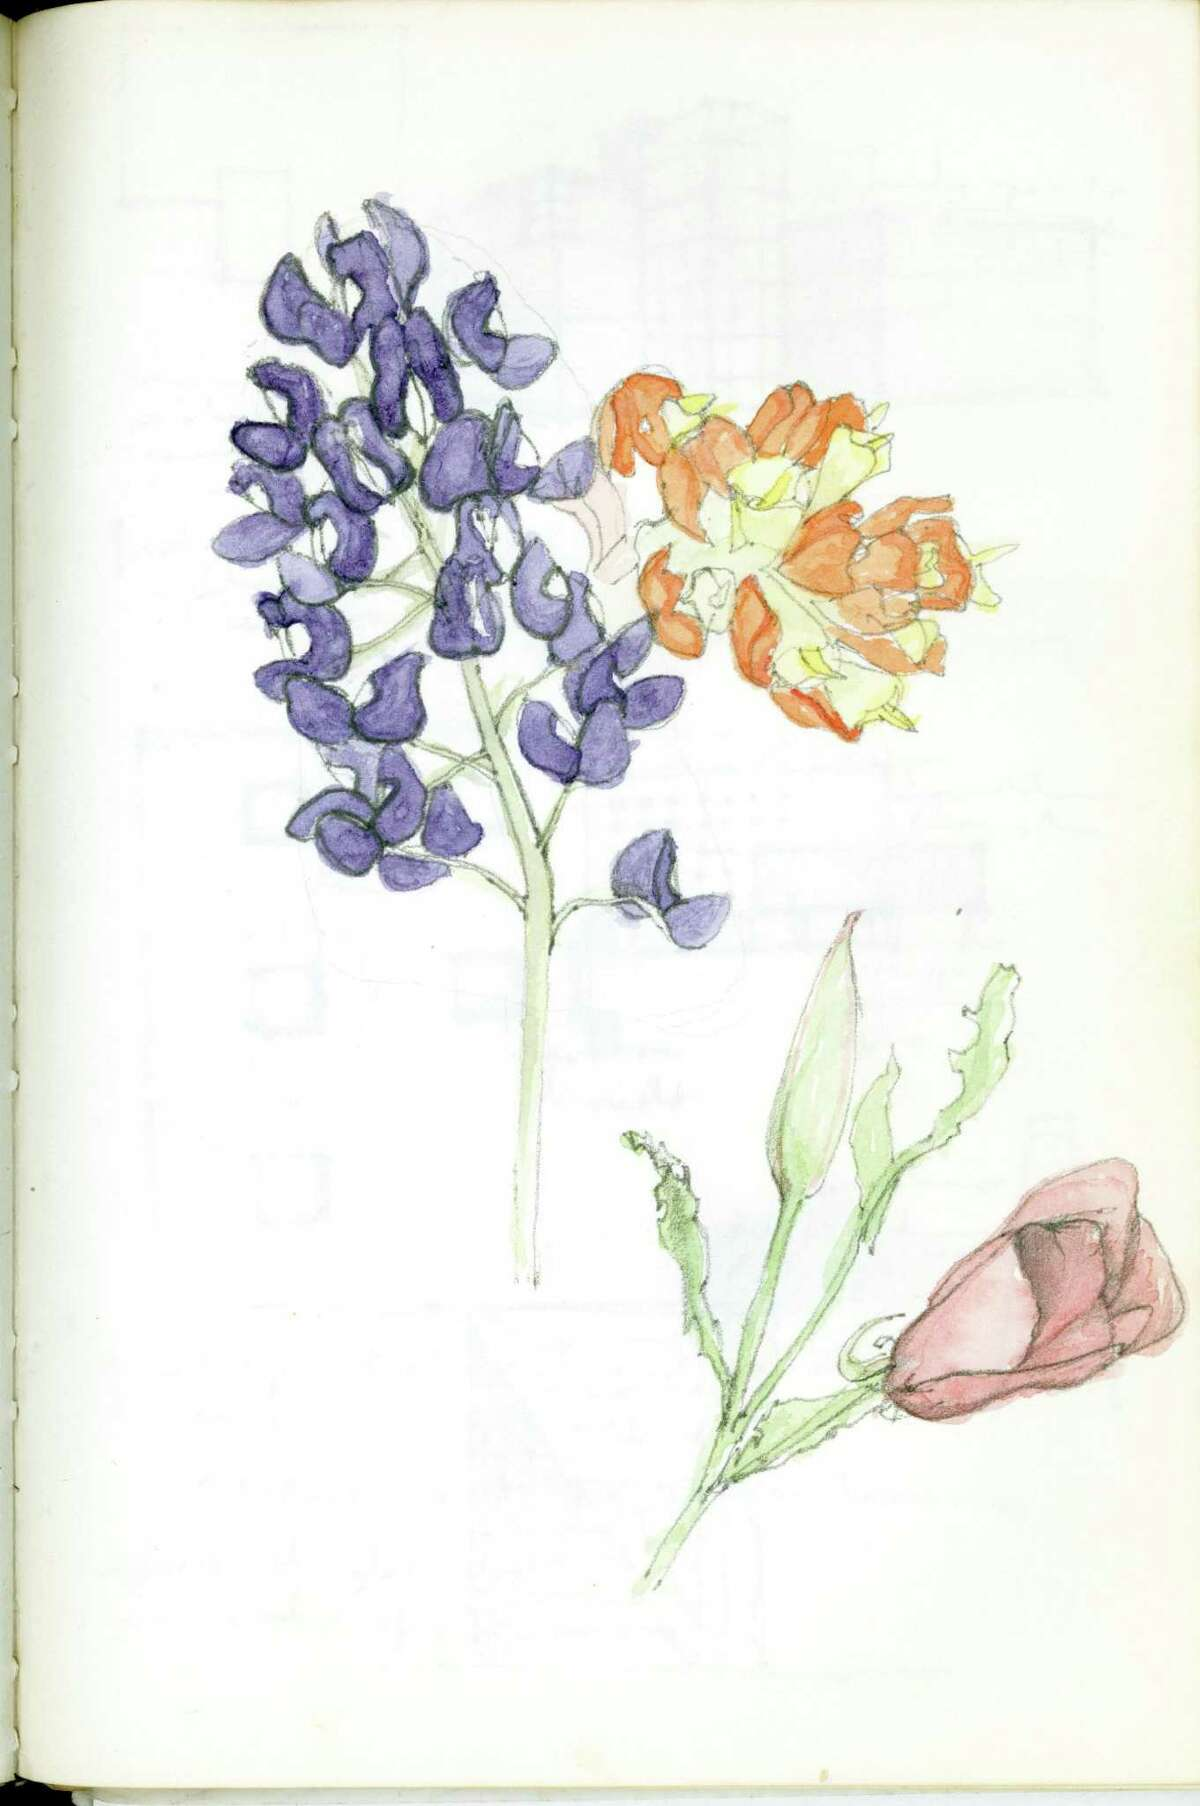 A drawing of flowers by Reagan Miller.